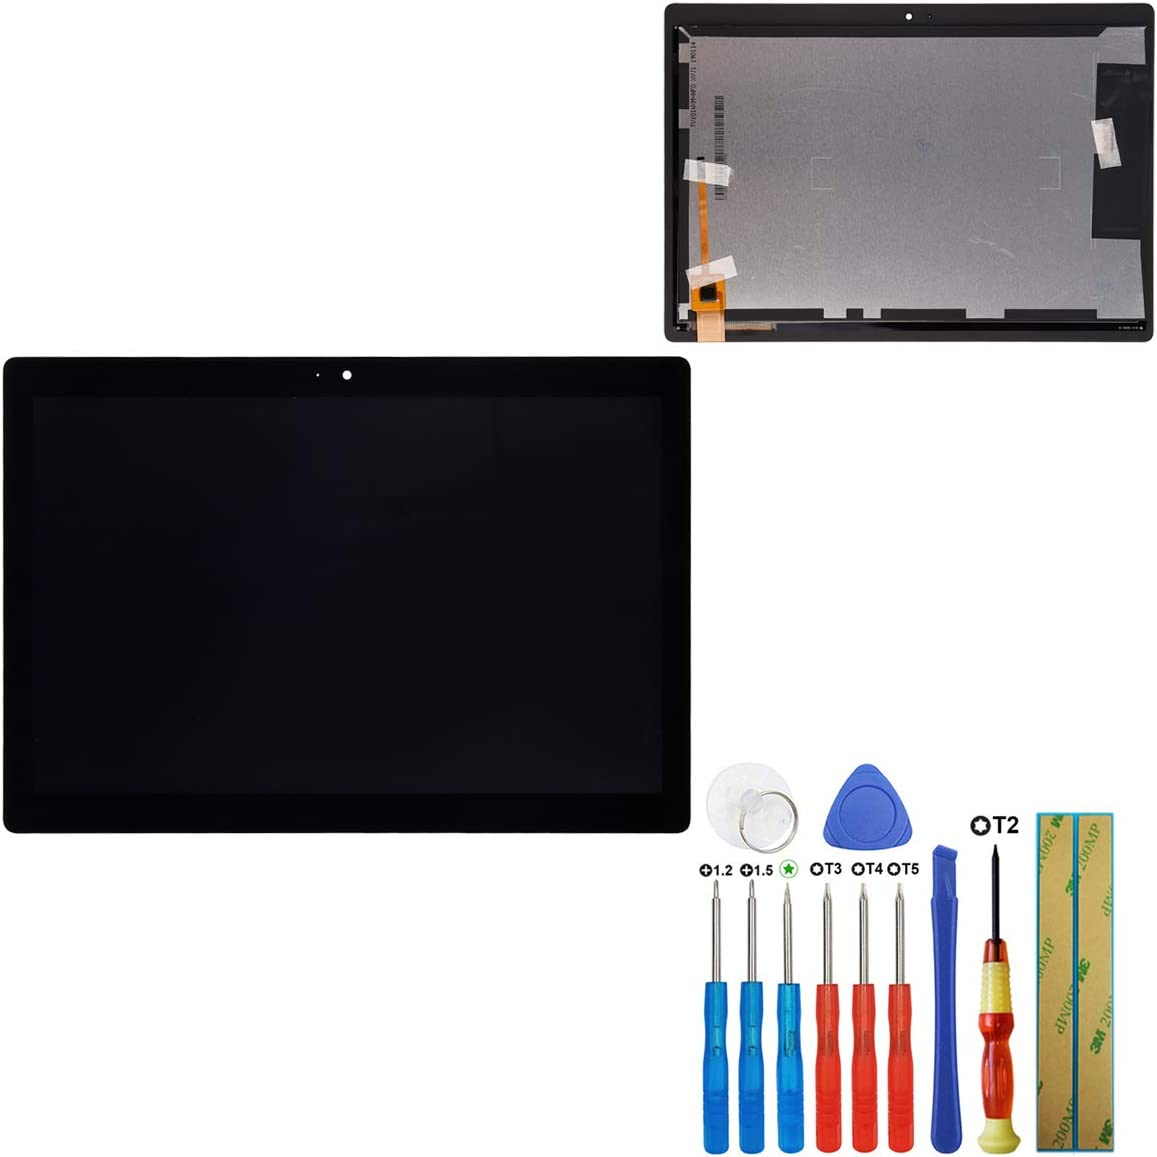 LCD Display Compatible with Lenovo Smart Tab M10 HD TB-X505 X505F 10.1 inch LCD Touch Screen Display Digitizer Assembly with Tools